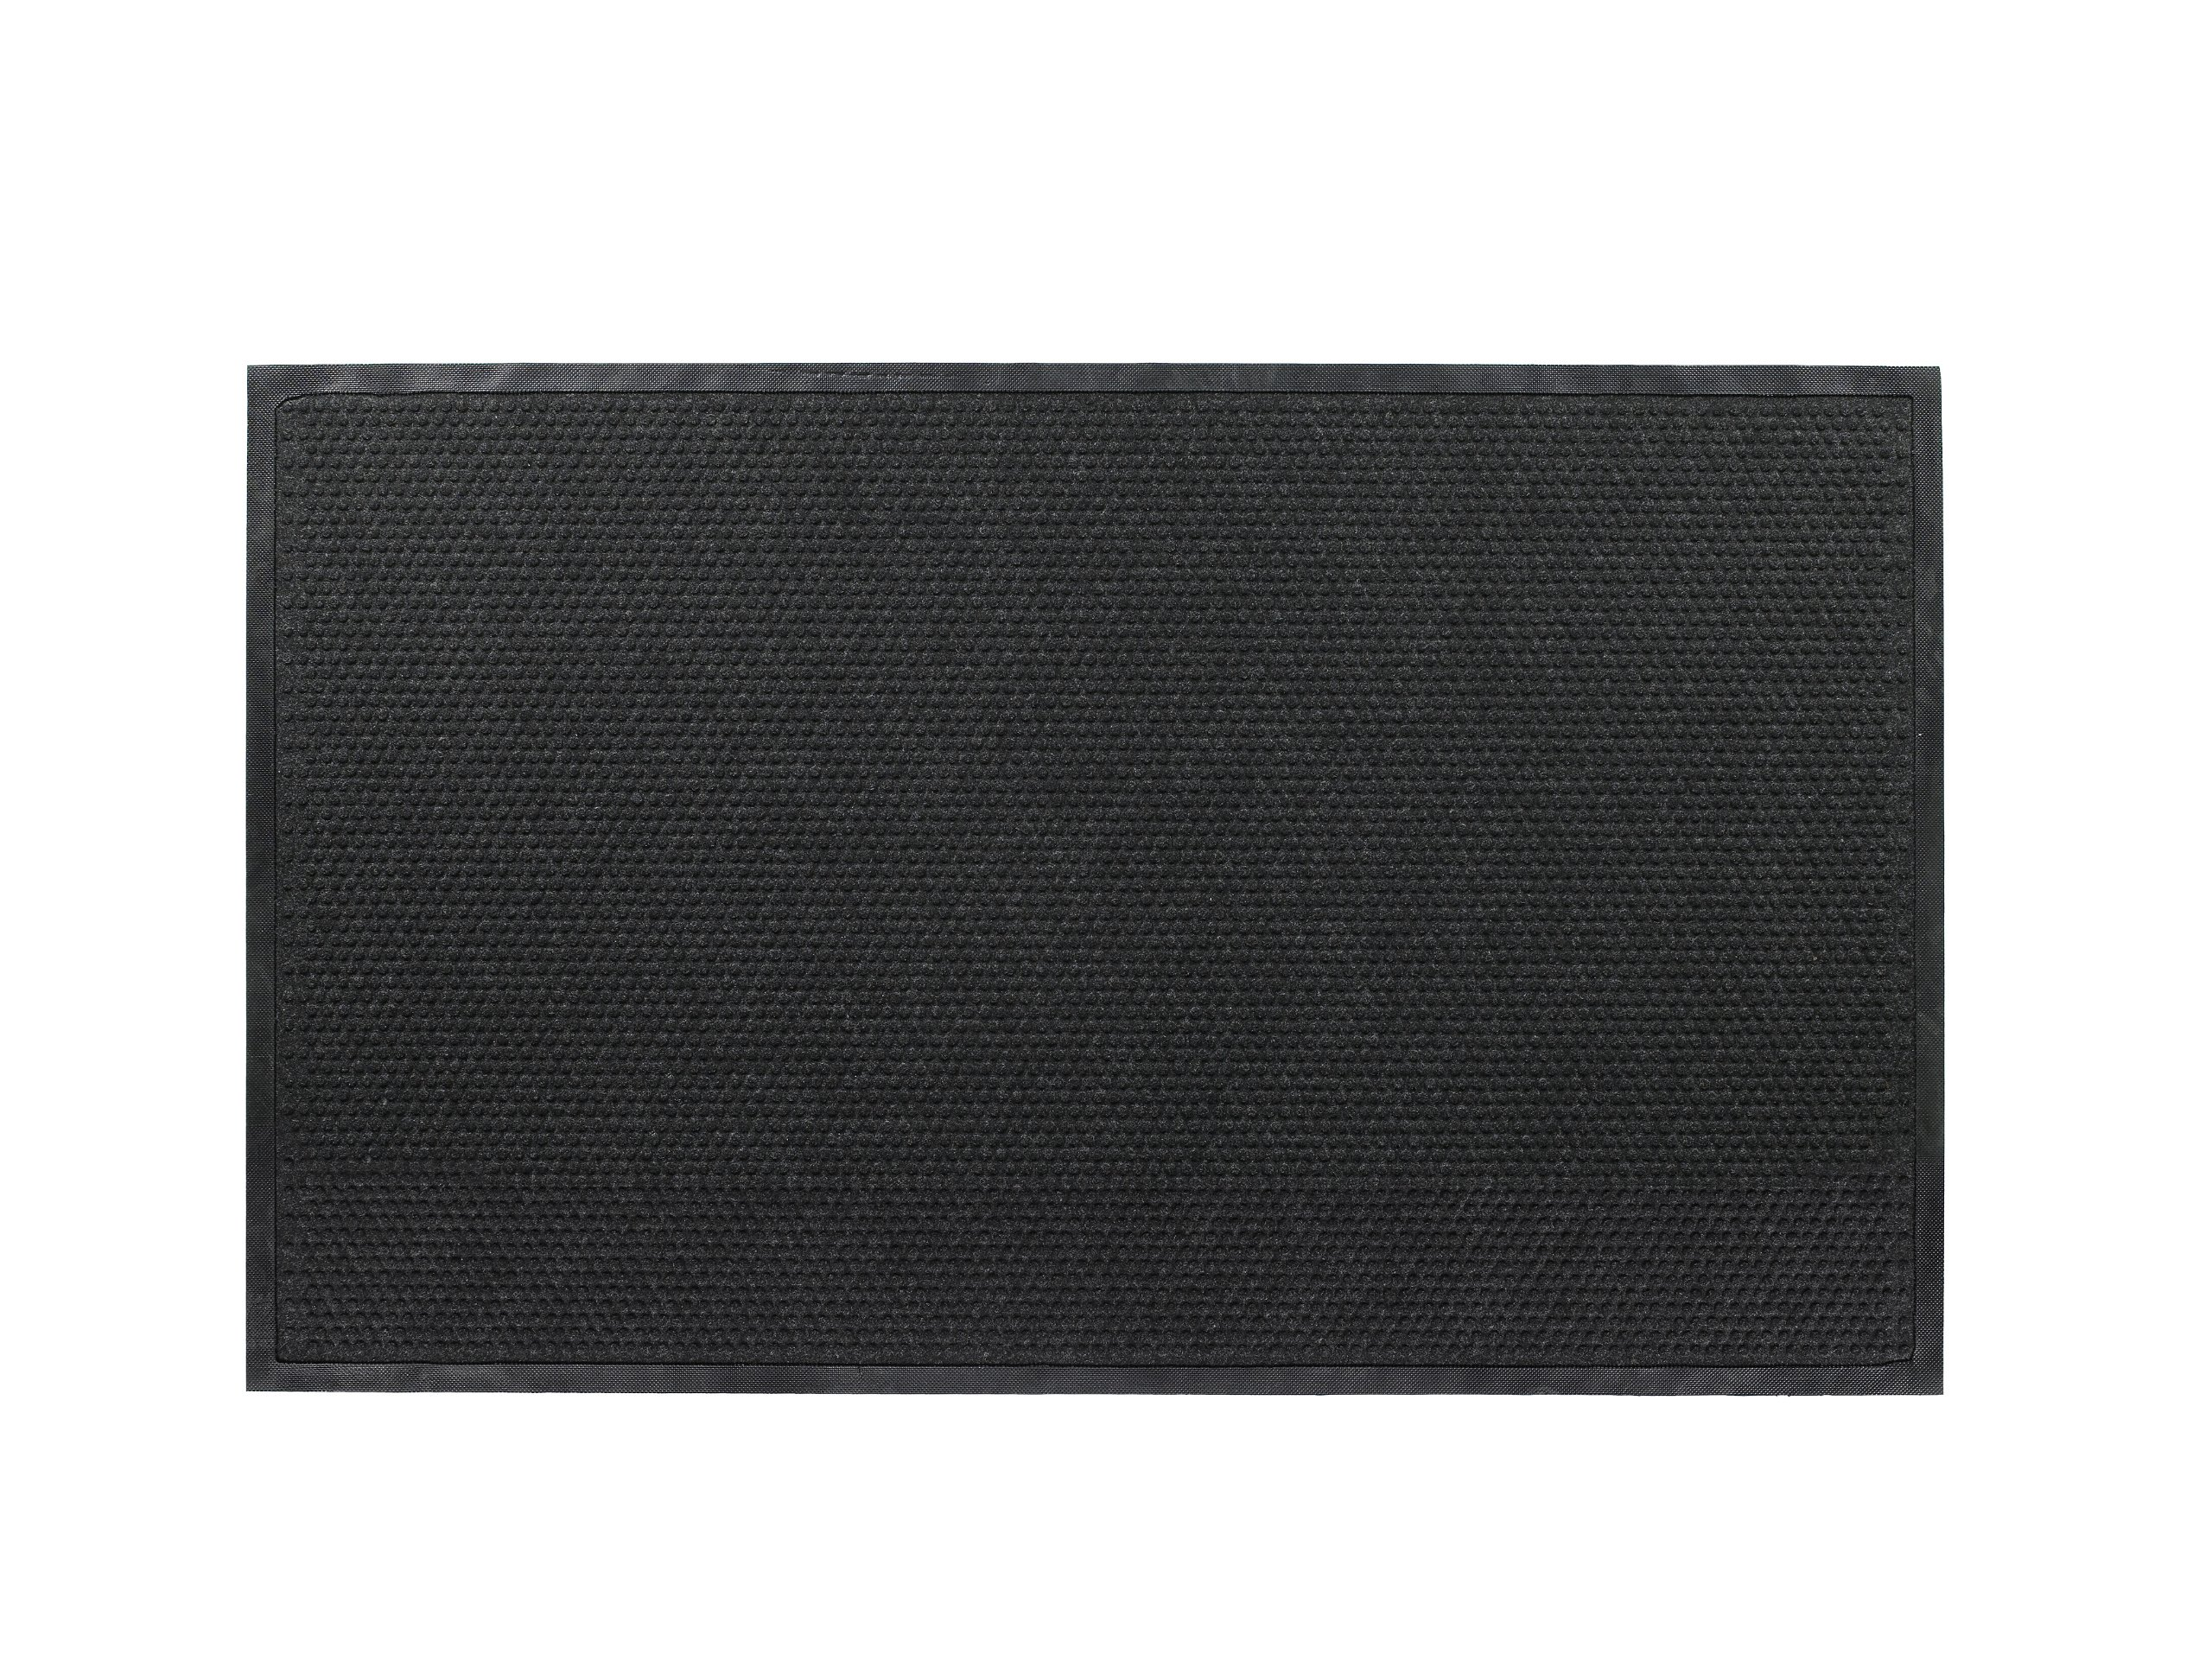 Andersen 883 Grease Hog Polypropylene Fabric Indoor/Wiper Scraper Floor Mat, Nitrile Rubber Backing, 10' Length x 3' Width, 1/4'' Thick, Coal Black